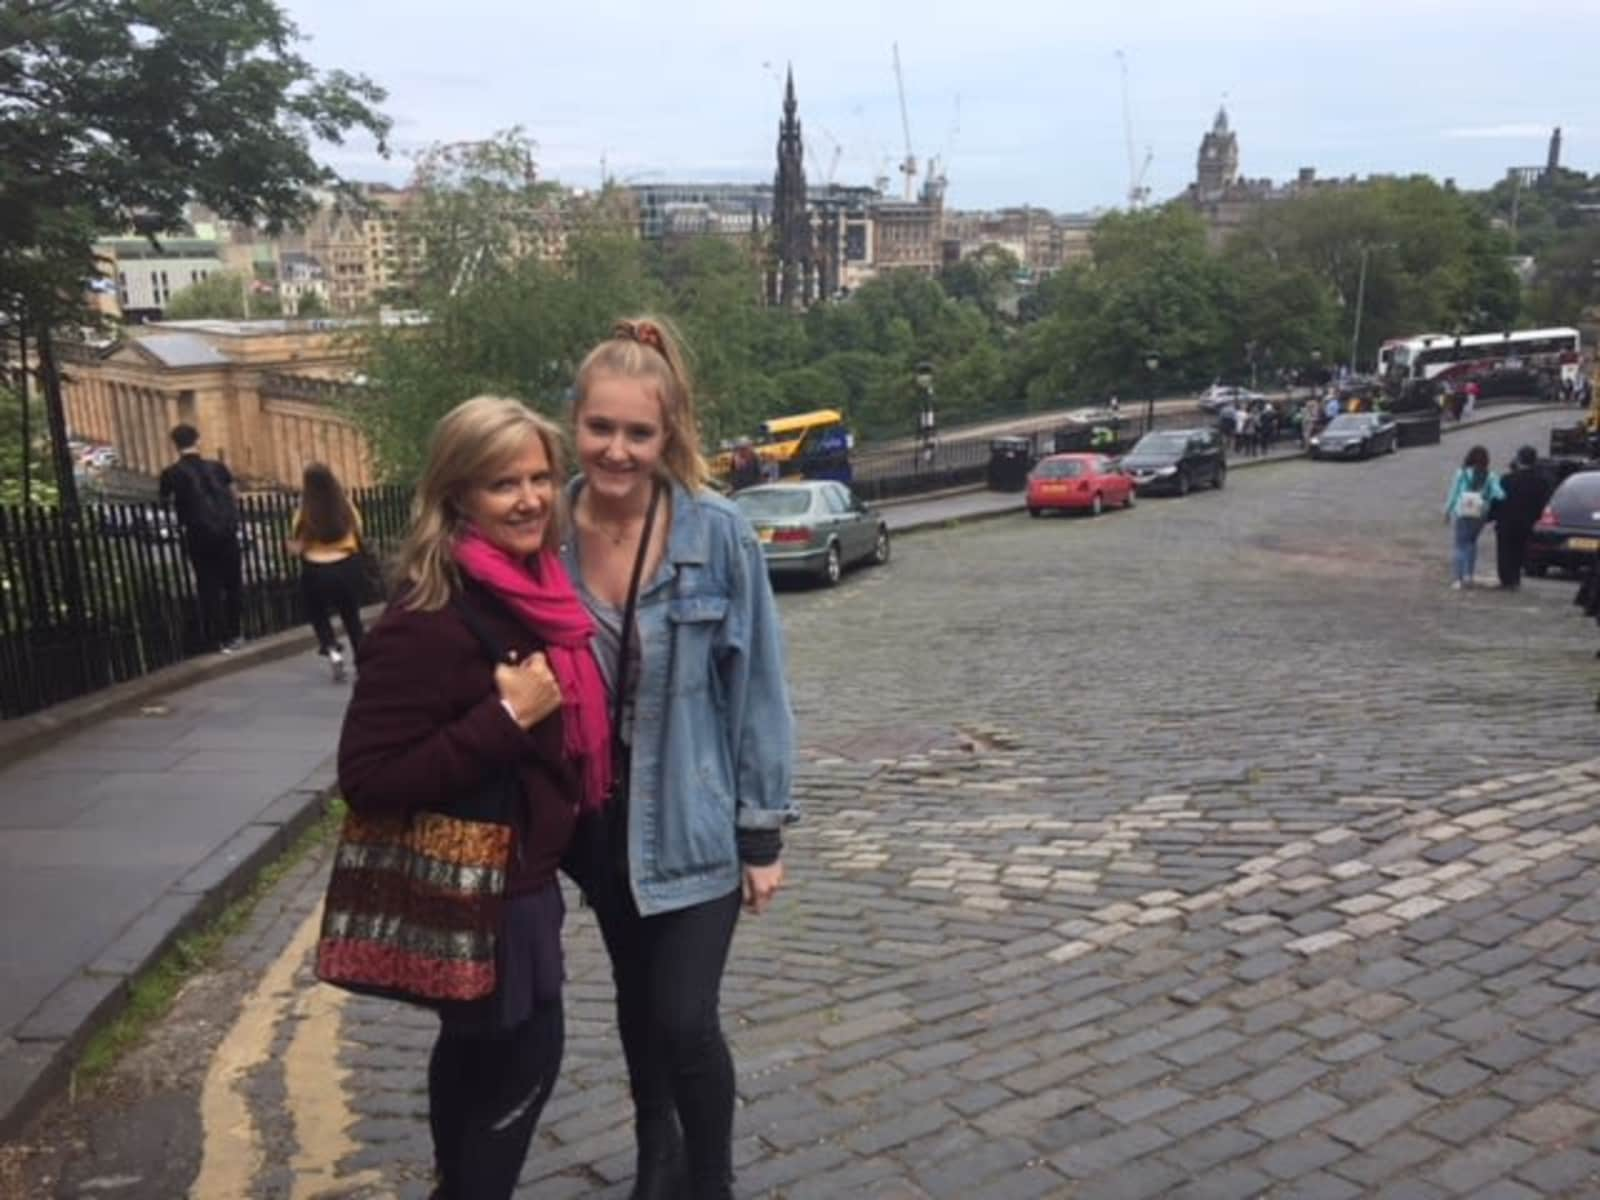 Janet & Morwenna from Bristol, United Kingdom